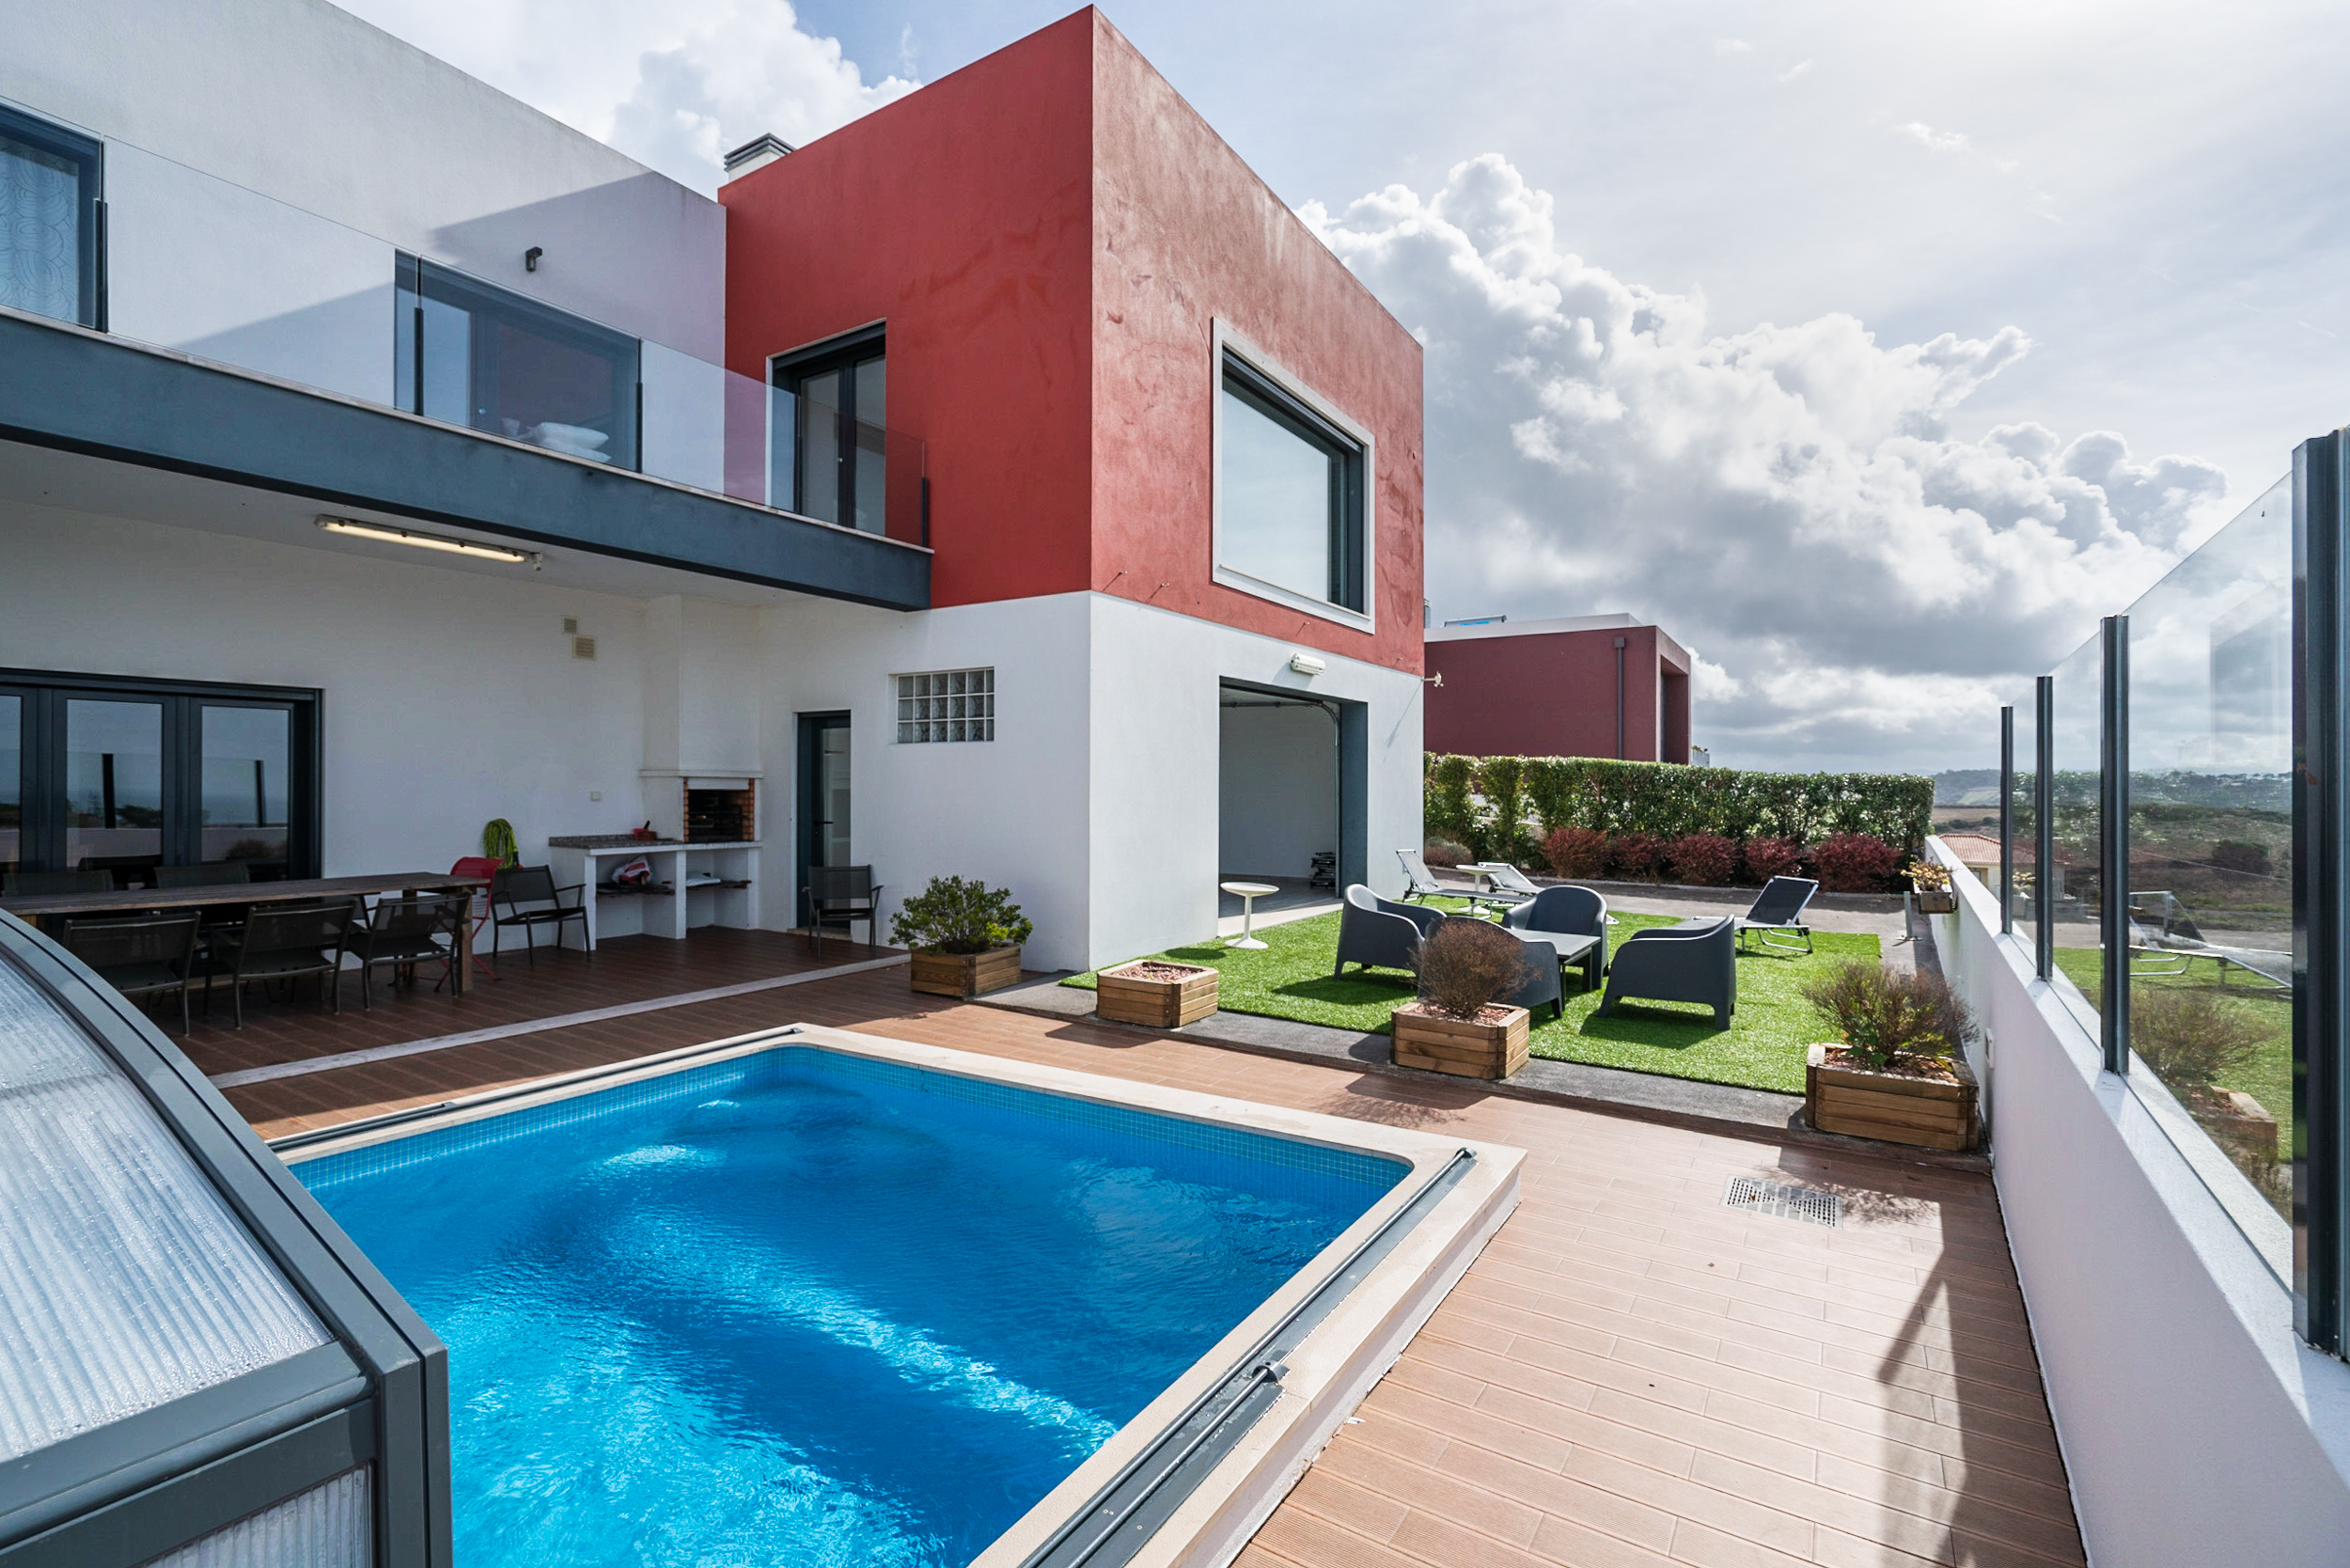 hc casa ocean spirit20 alojamento local casas de férias homeconnect stories